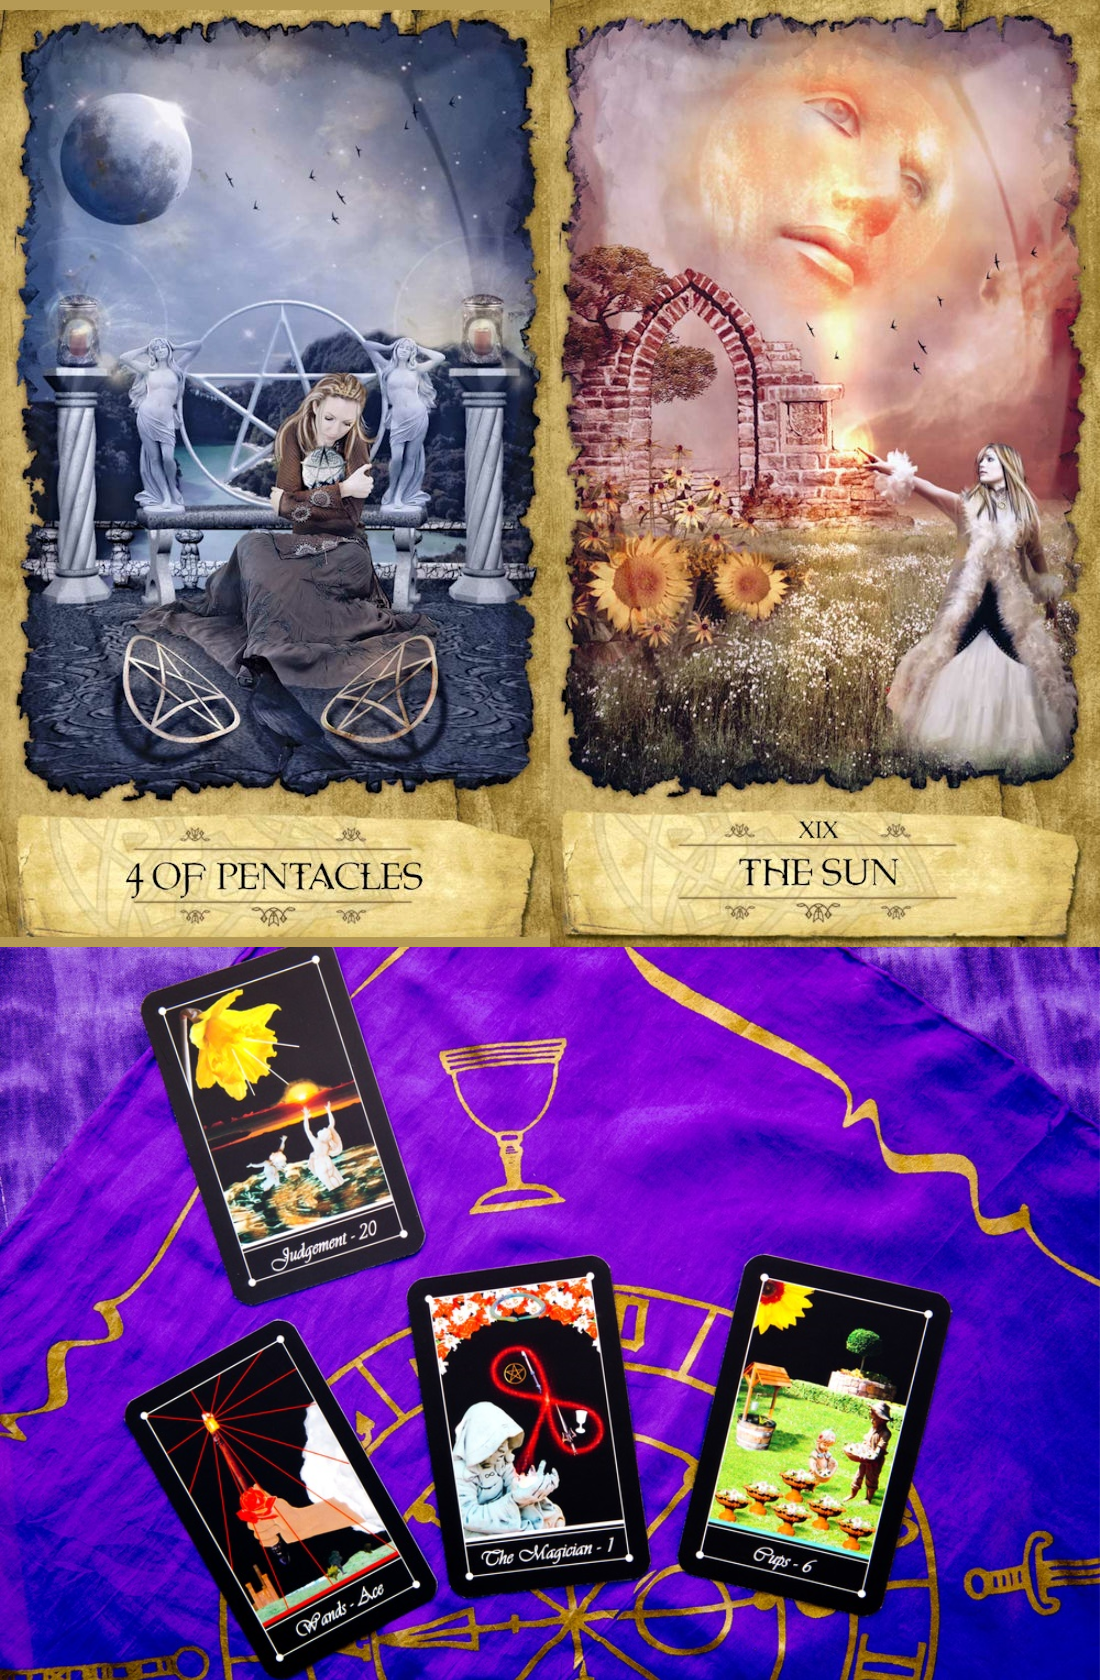 1823fa4f2e6213 tarot set, tarot live yes or no and tarot holder, free full tarot reading  online and tarot guide. Best 2018 psychic readings questions and tarot  meanings ...